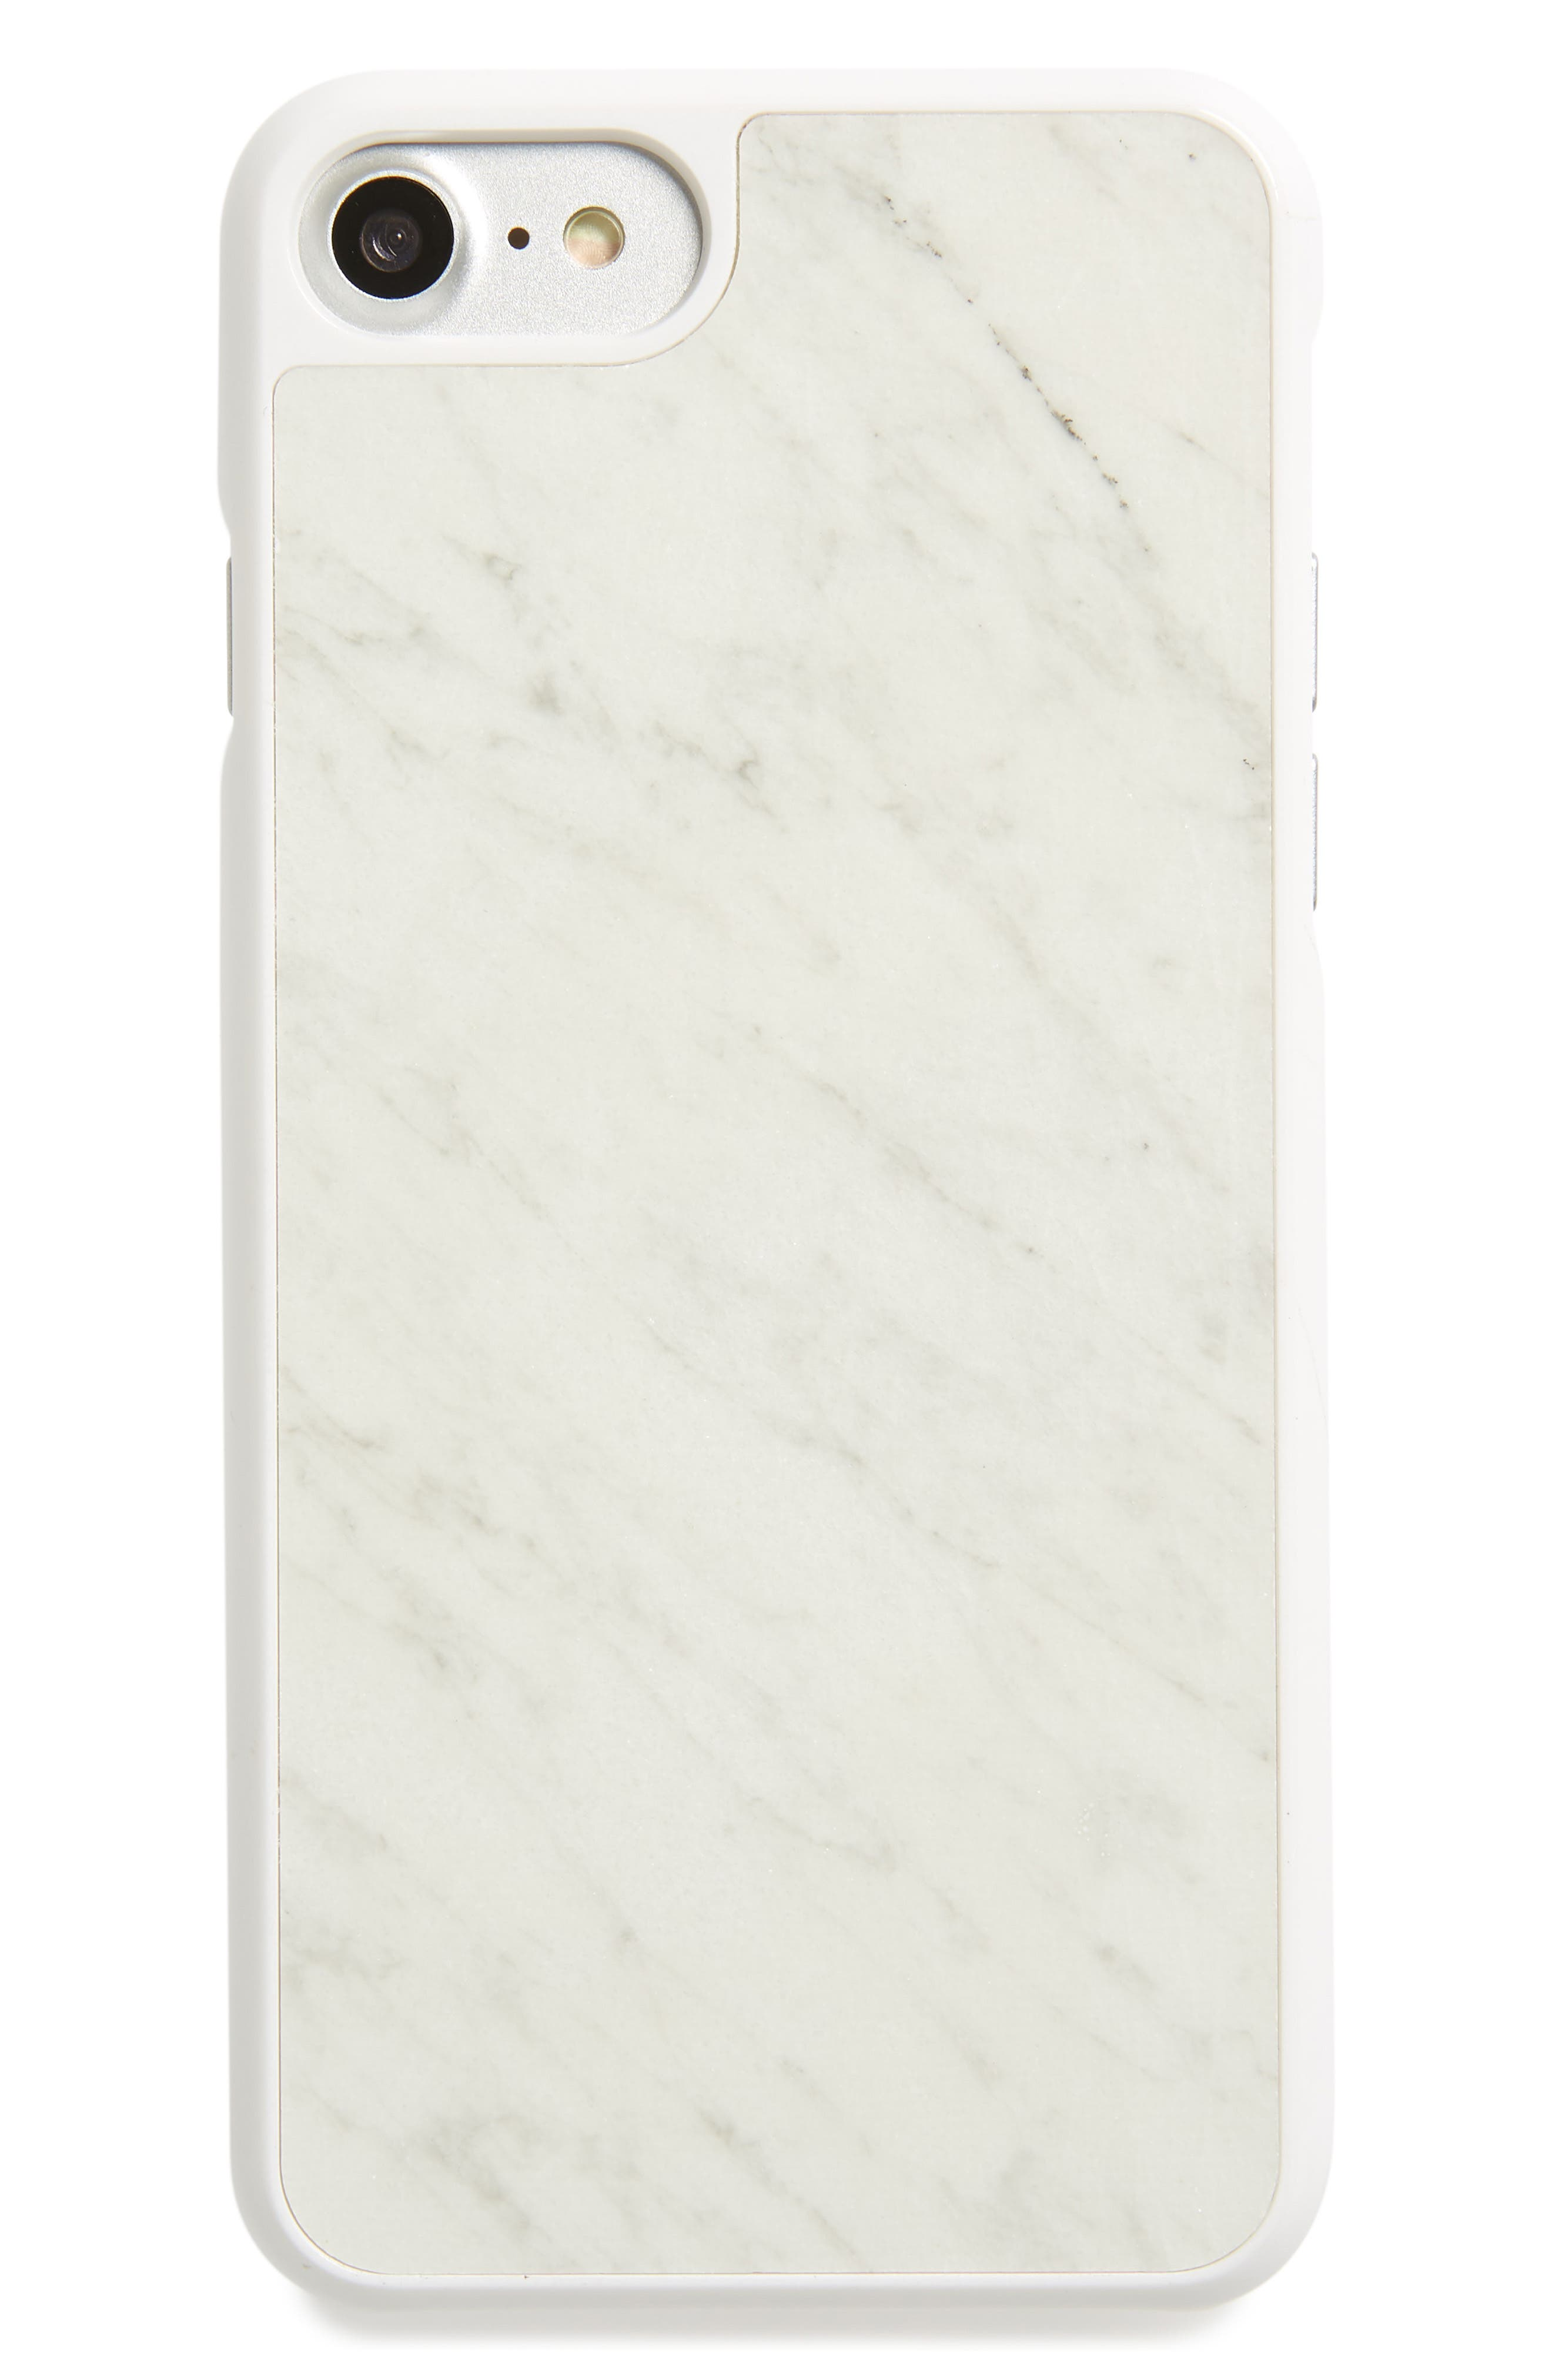 Genuine White Marble iPhone 6/6s/7/8 & 6/6s/7/8 Plus Case,                         Main,                         color, WHITE